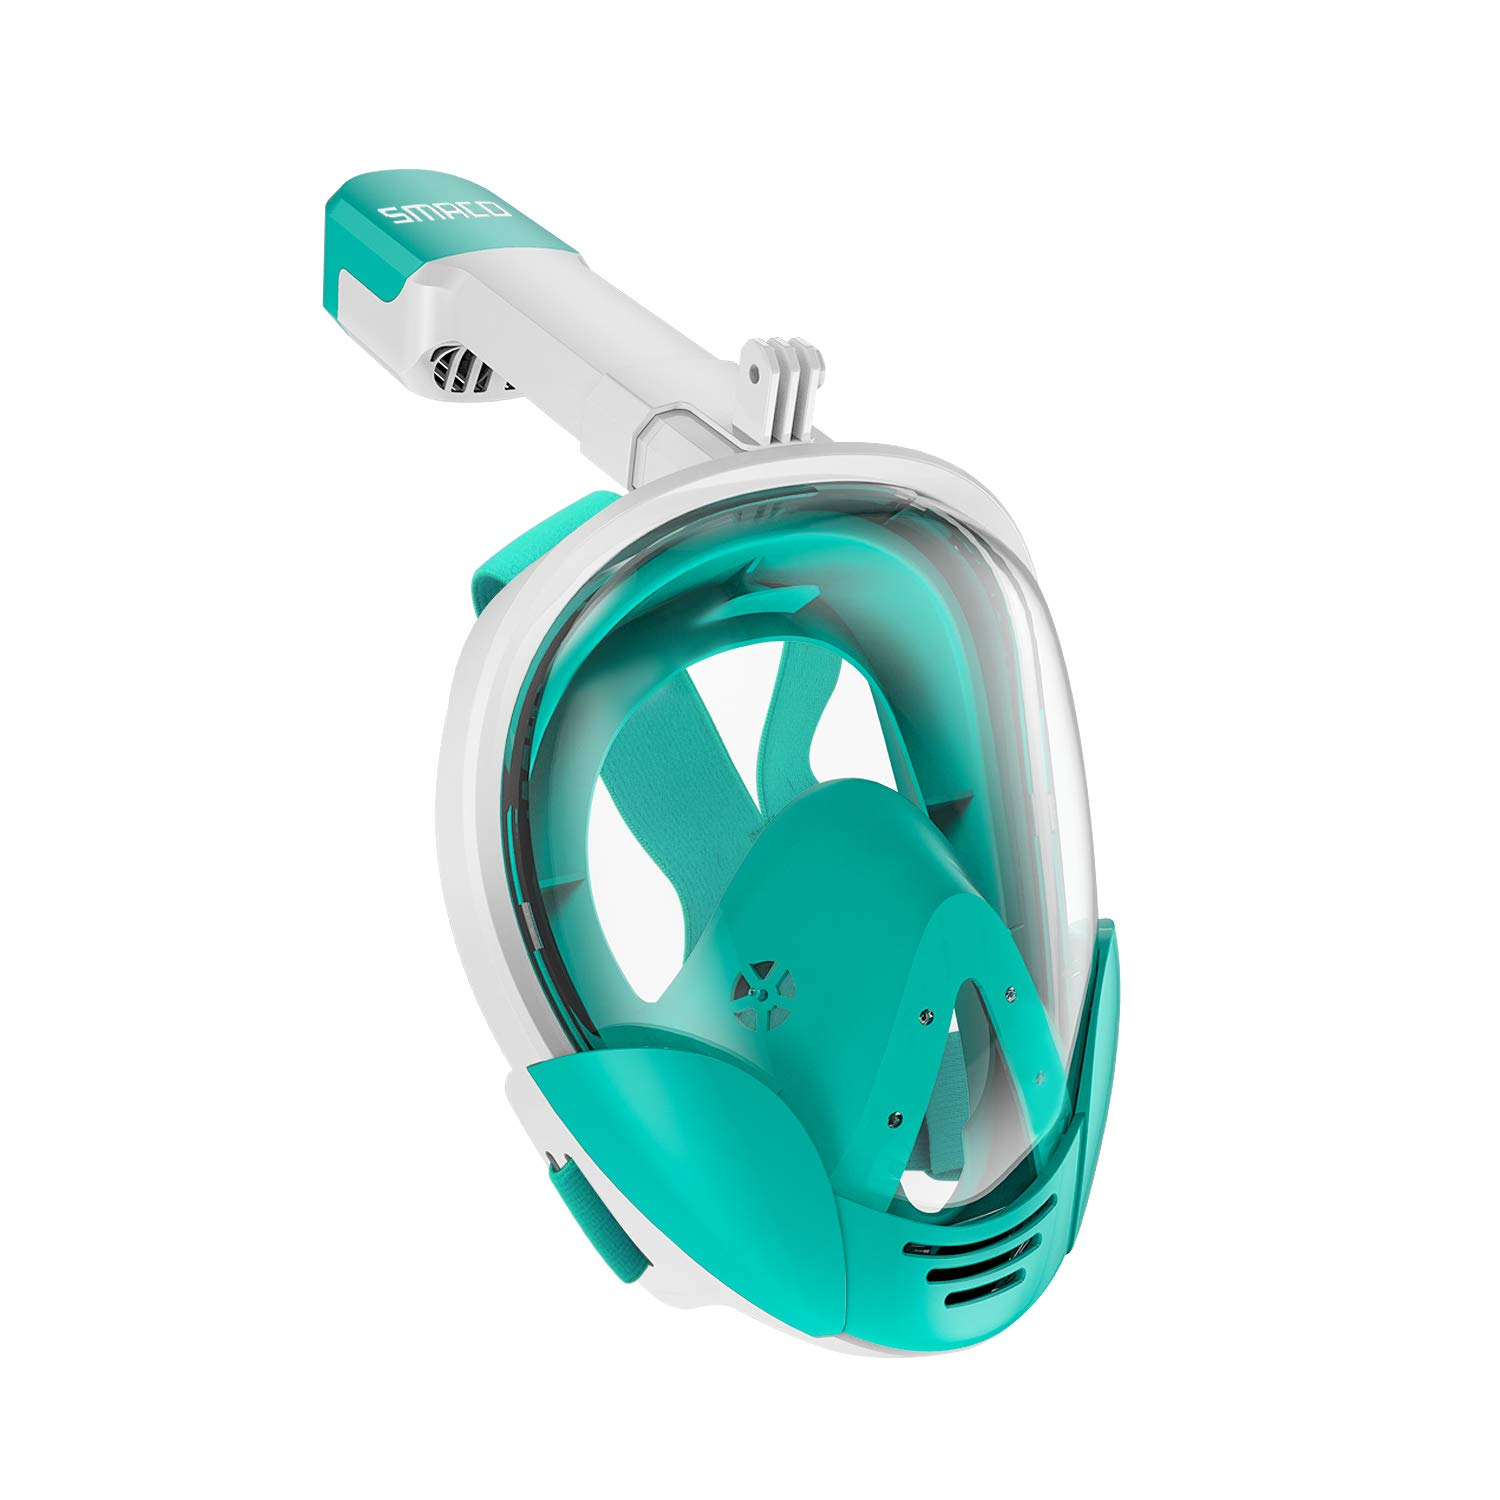 SMACO Full Face Snorkel Mask with UV Protection Anti-Fog Anti-Leak Snorkeling Mask with Detachable Camera Mount 180° Panoramic View Swimming Mask for Adults and Youth (White/Green, Small/Medium) by SMACO